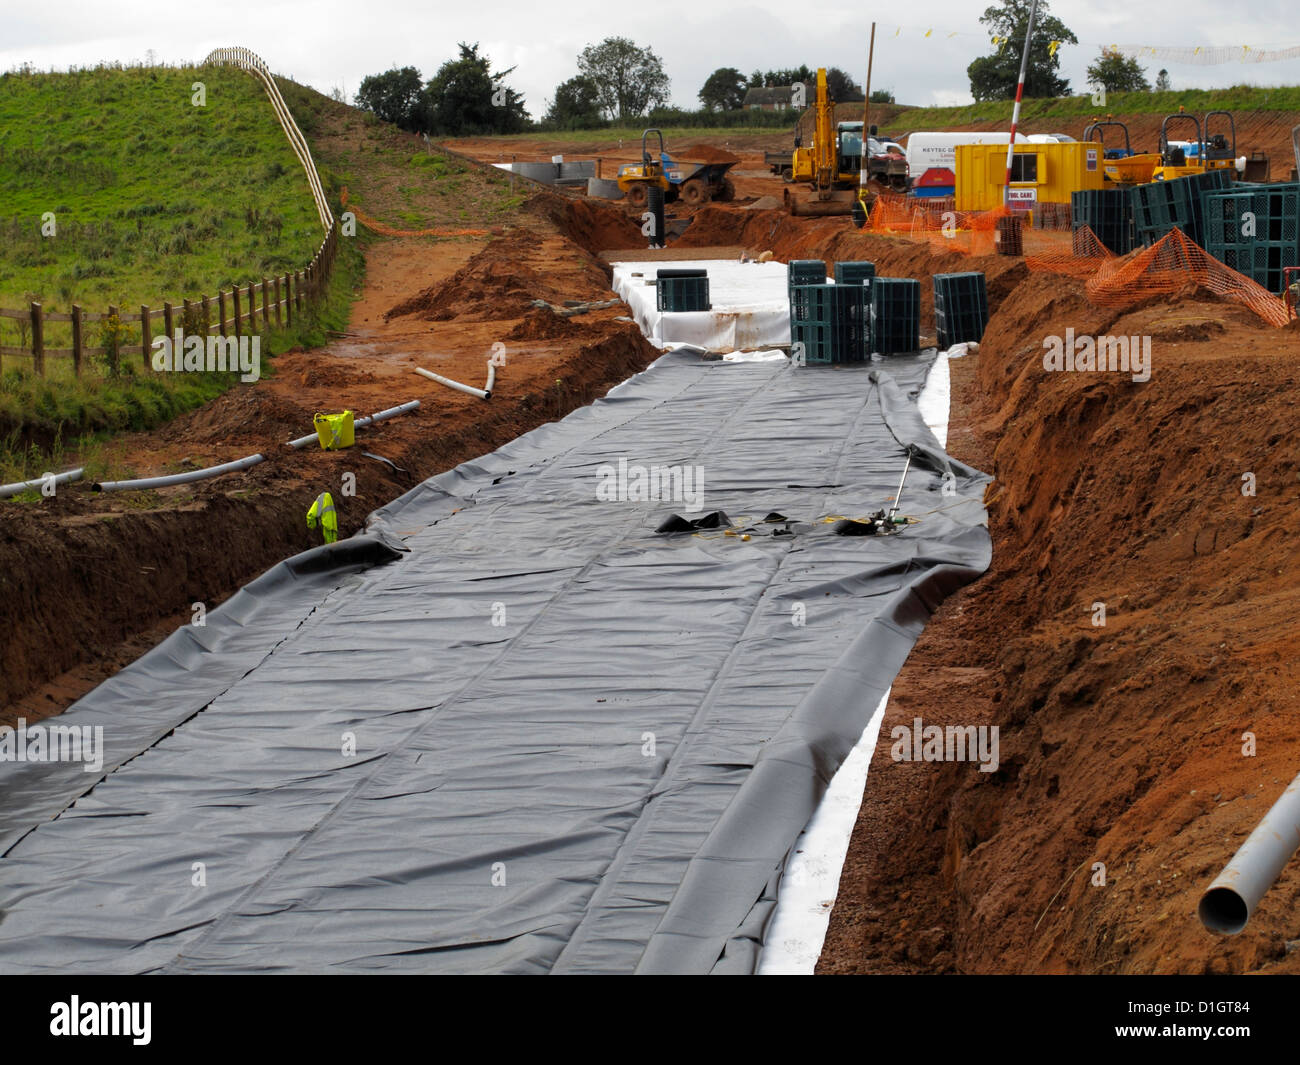 Large underground water storage chamber plastic crate system Sustainable Urban Drainage System SUDS for new highway - Stock Image